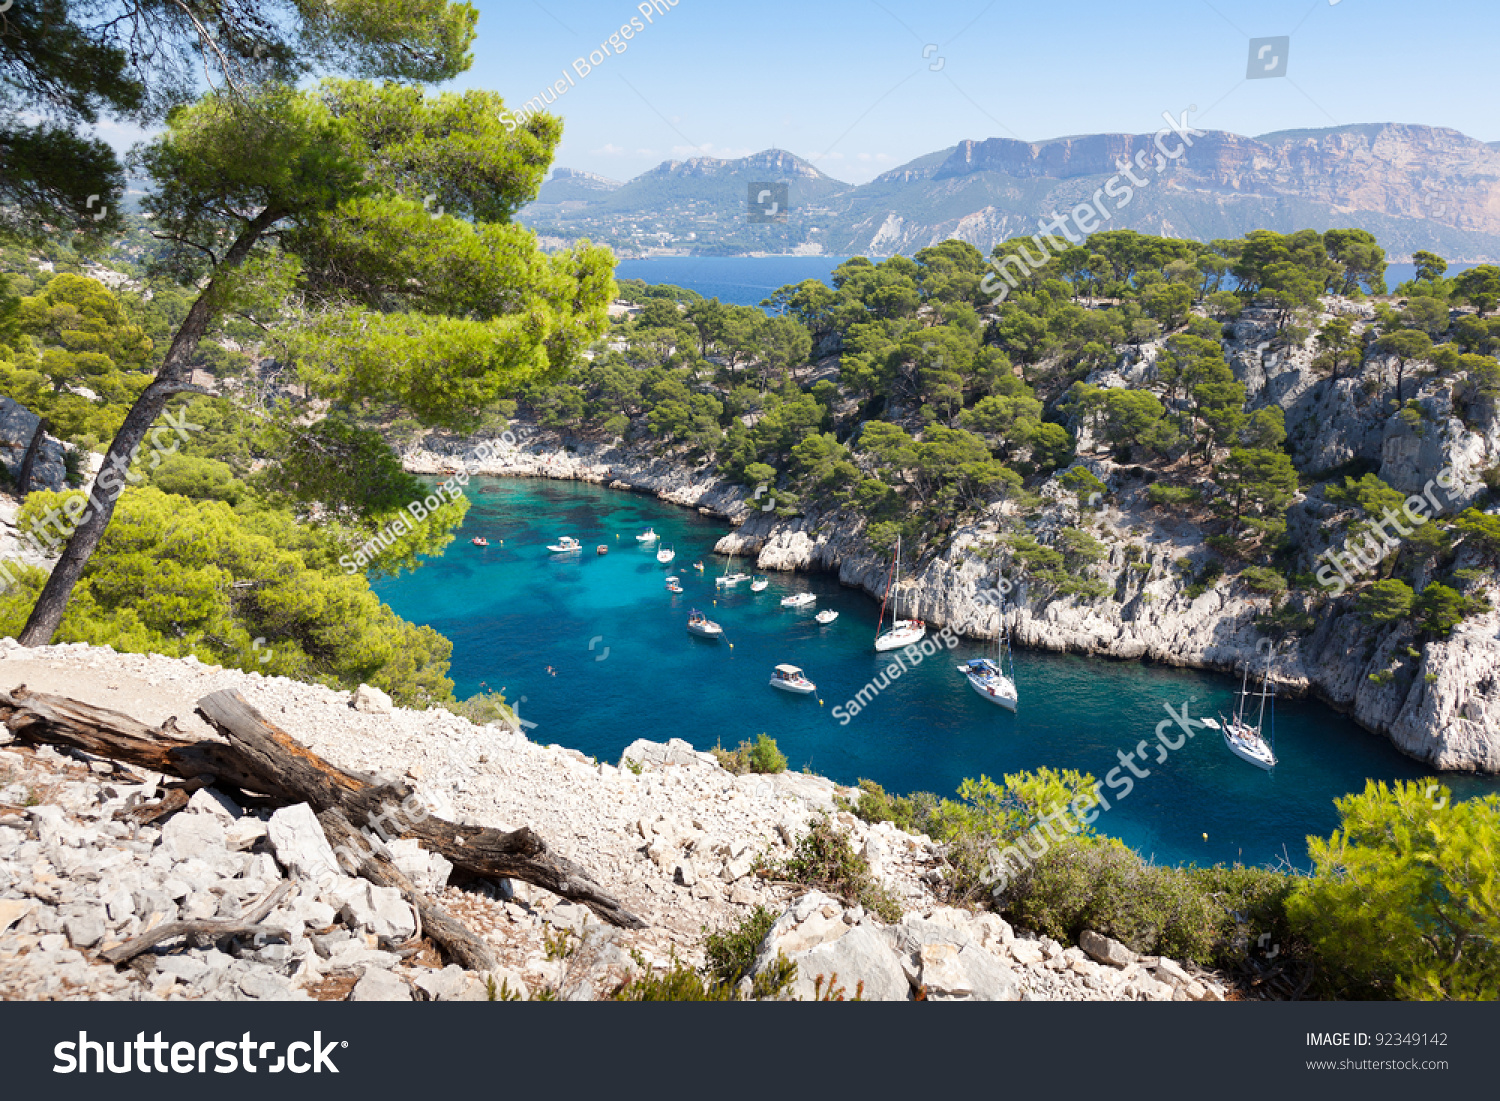 Location Canoe Cassis Calanques Port Pin Cassis France Stock Photo Edit Now 92349142